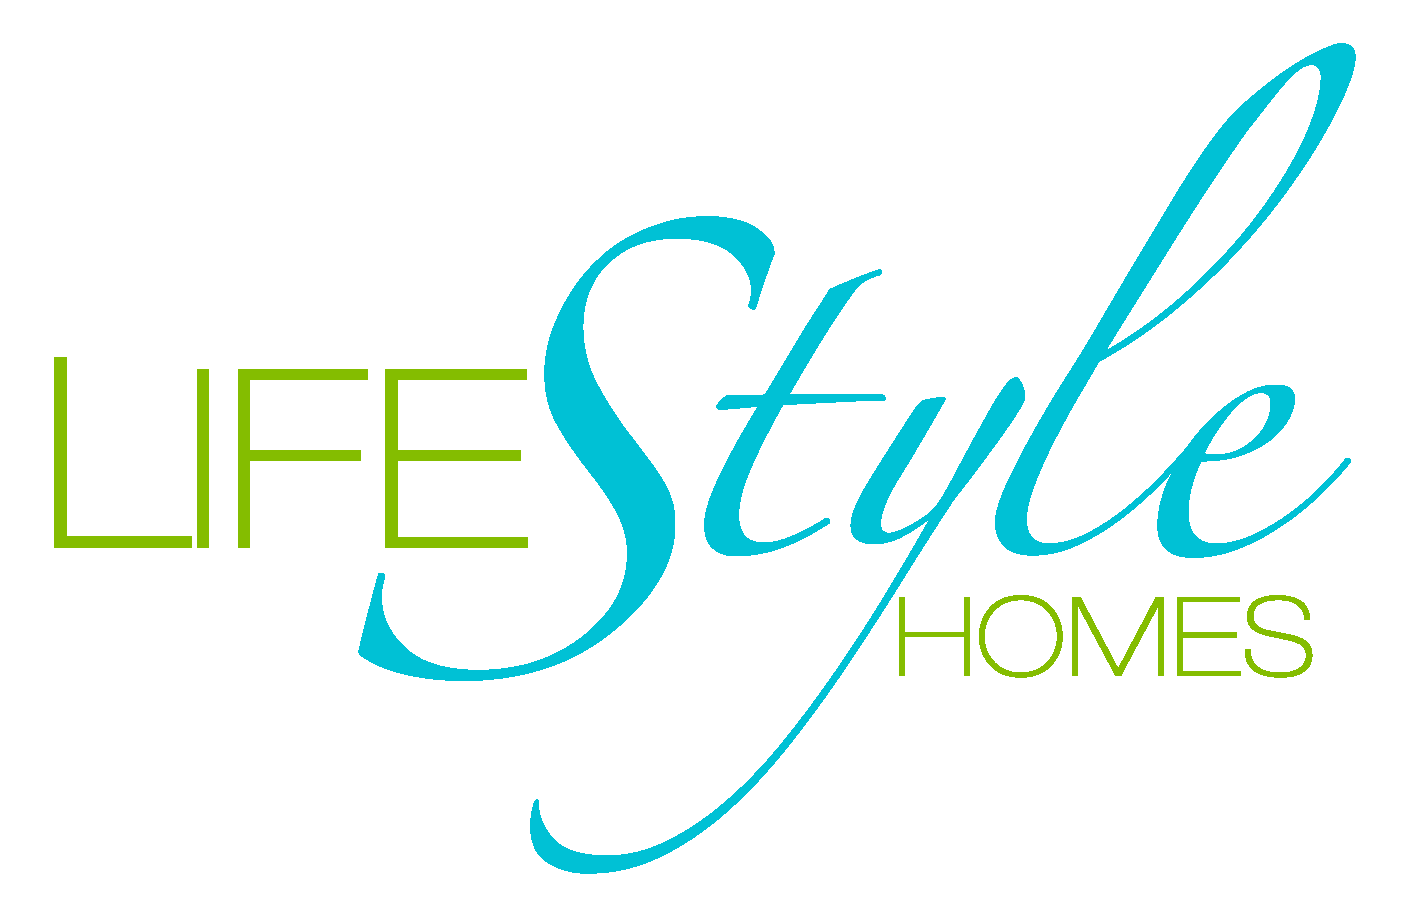 New Home Builders In Utah & Idaho - Lifestyle Homes